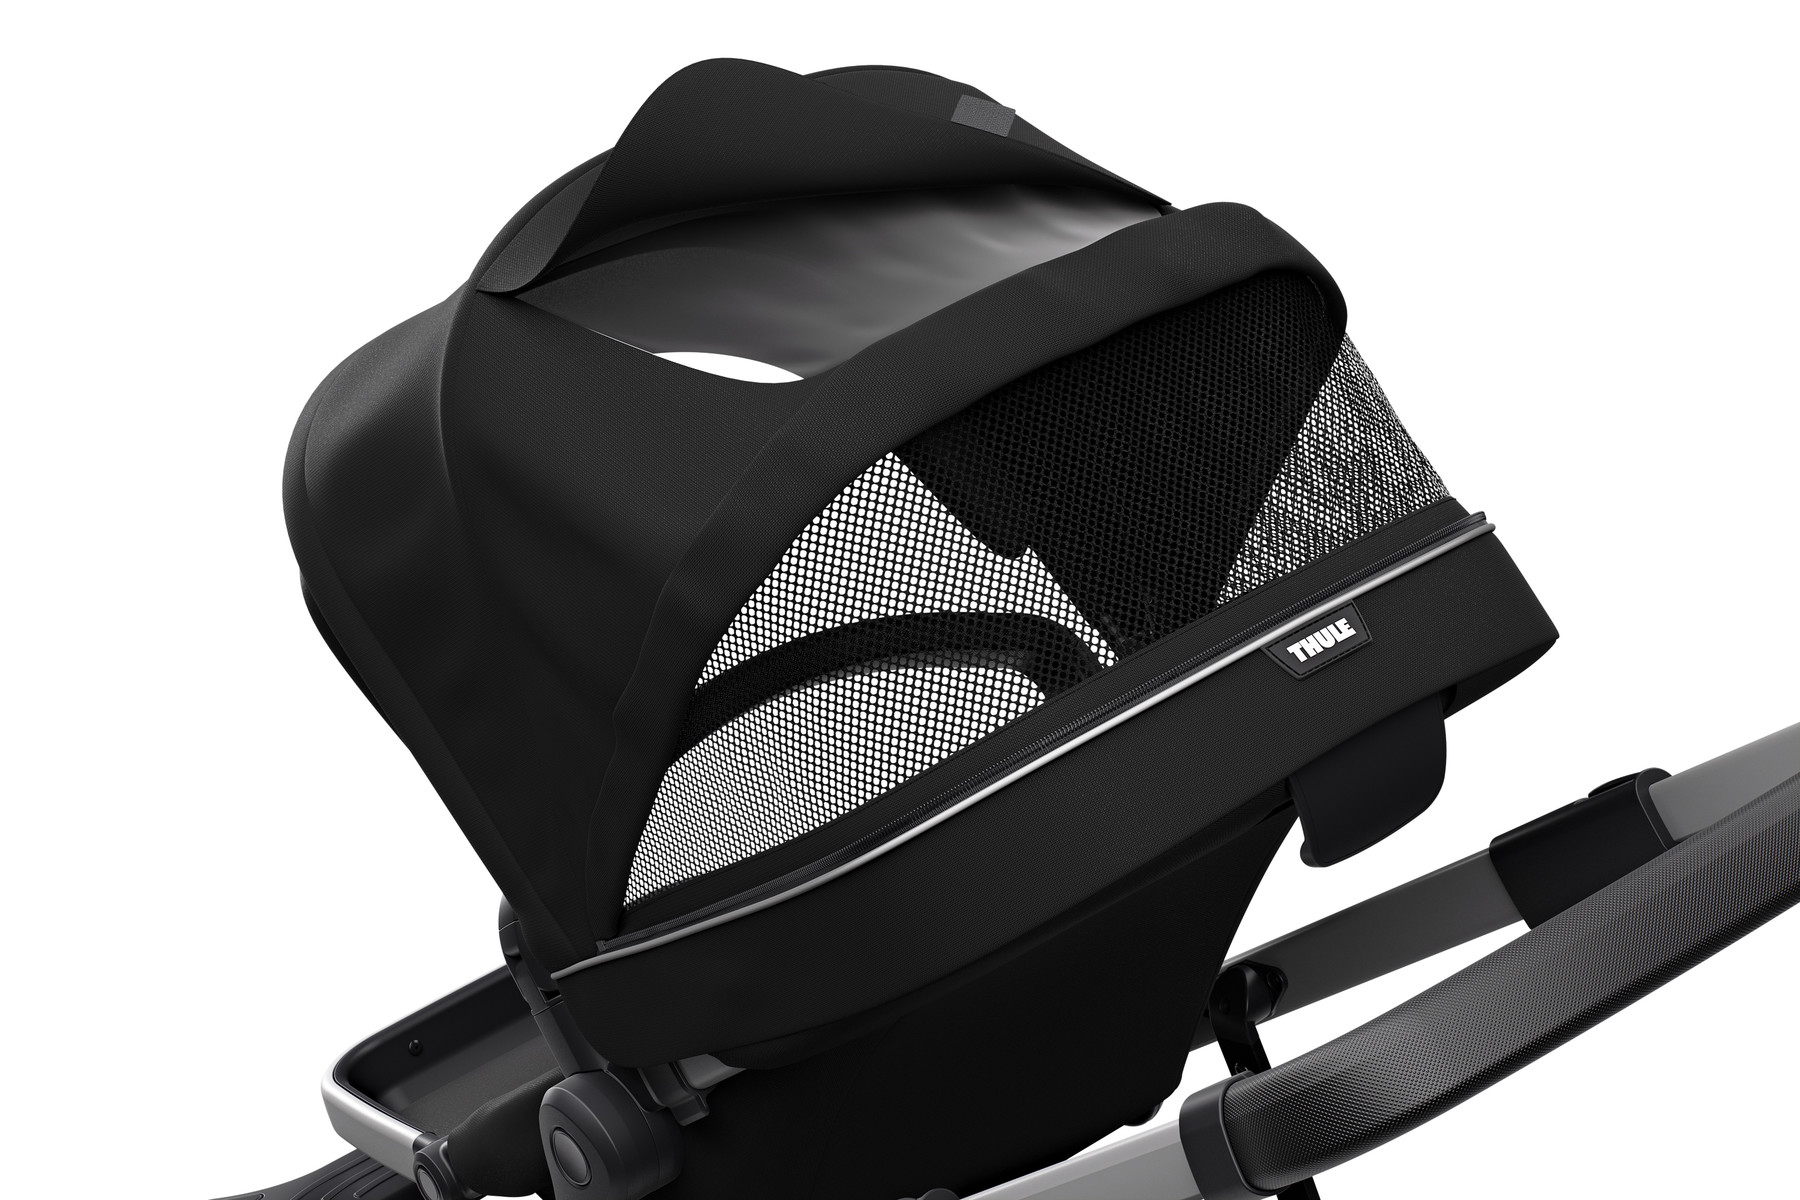 Extendable canopy of Thule Sleek Midnight Black